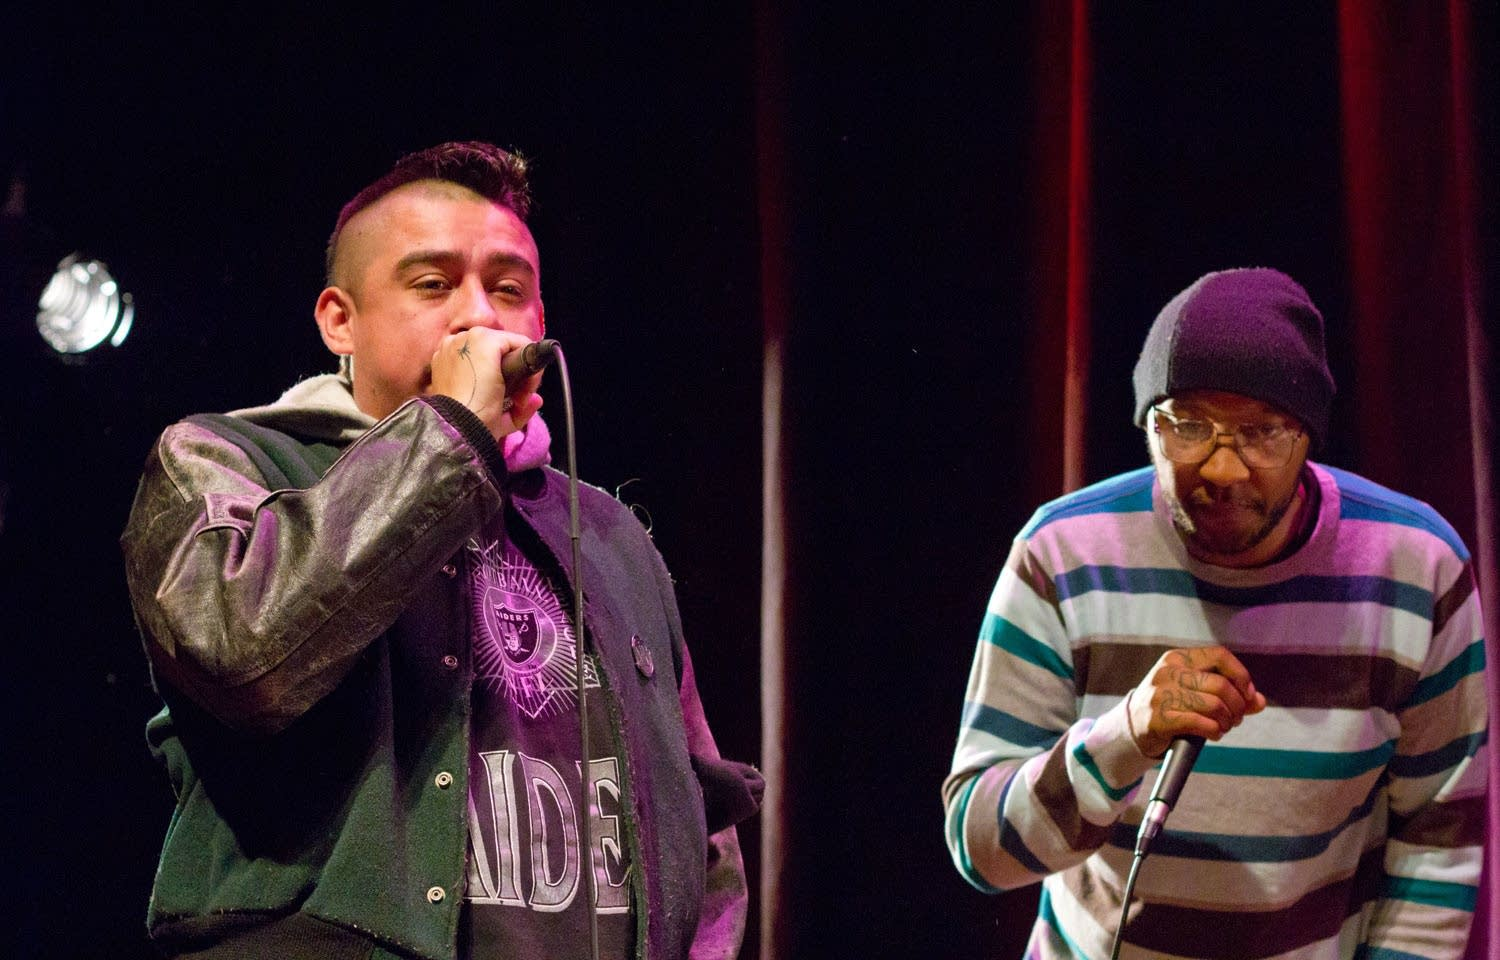 Mike Mictlan and P.O.S.